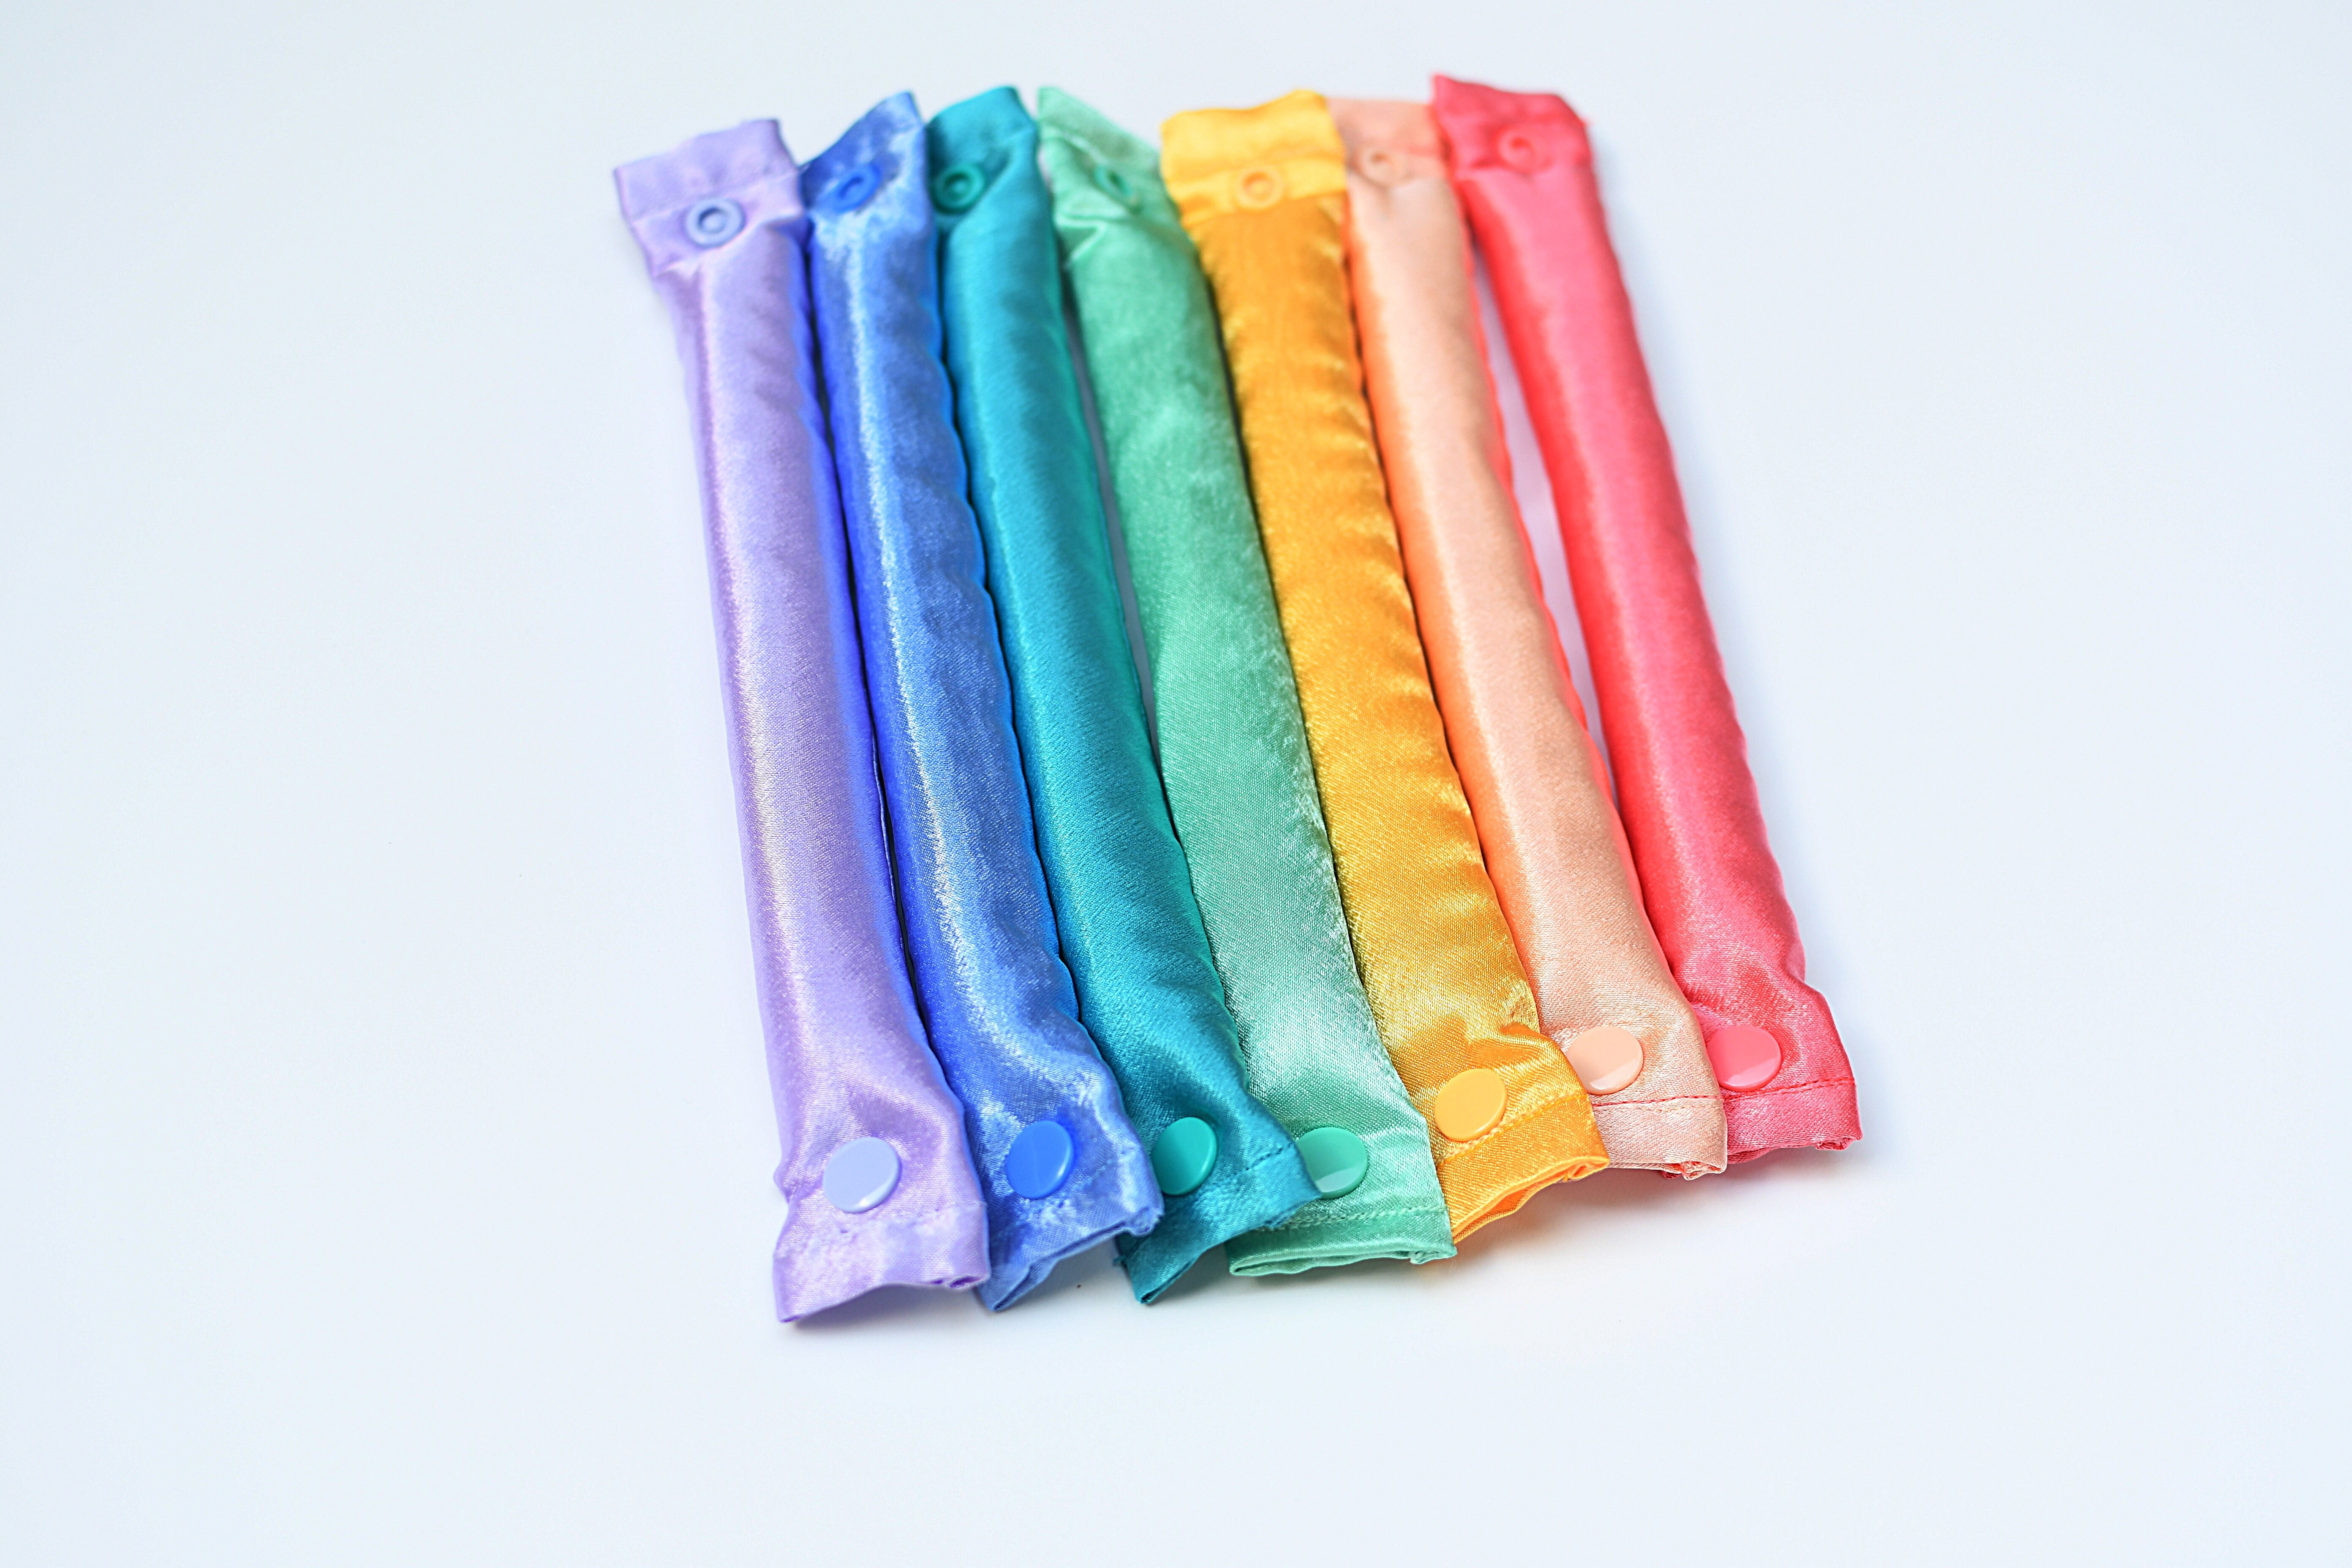 Satin Rainbow Pastel Colors Themed Fabric Hair Rollers / Soft Fabric Rollers / Hair Curlers / Hair Accessories - My Easy Curls